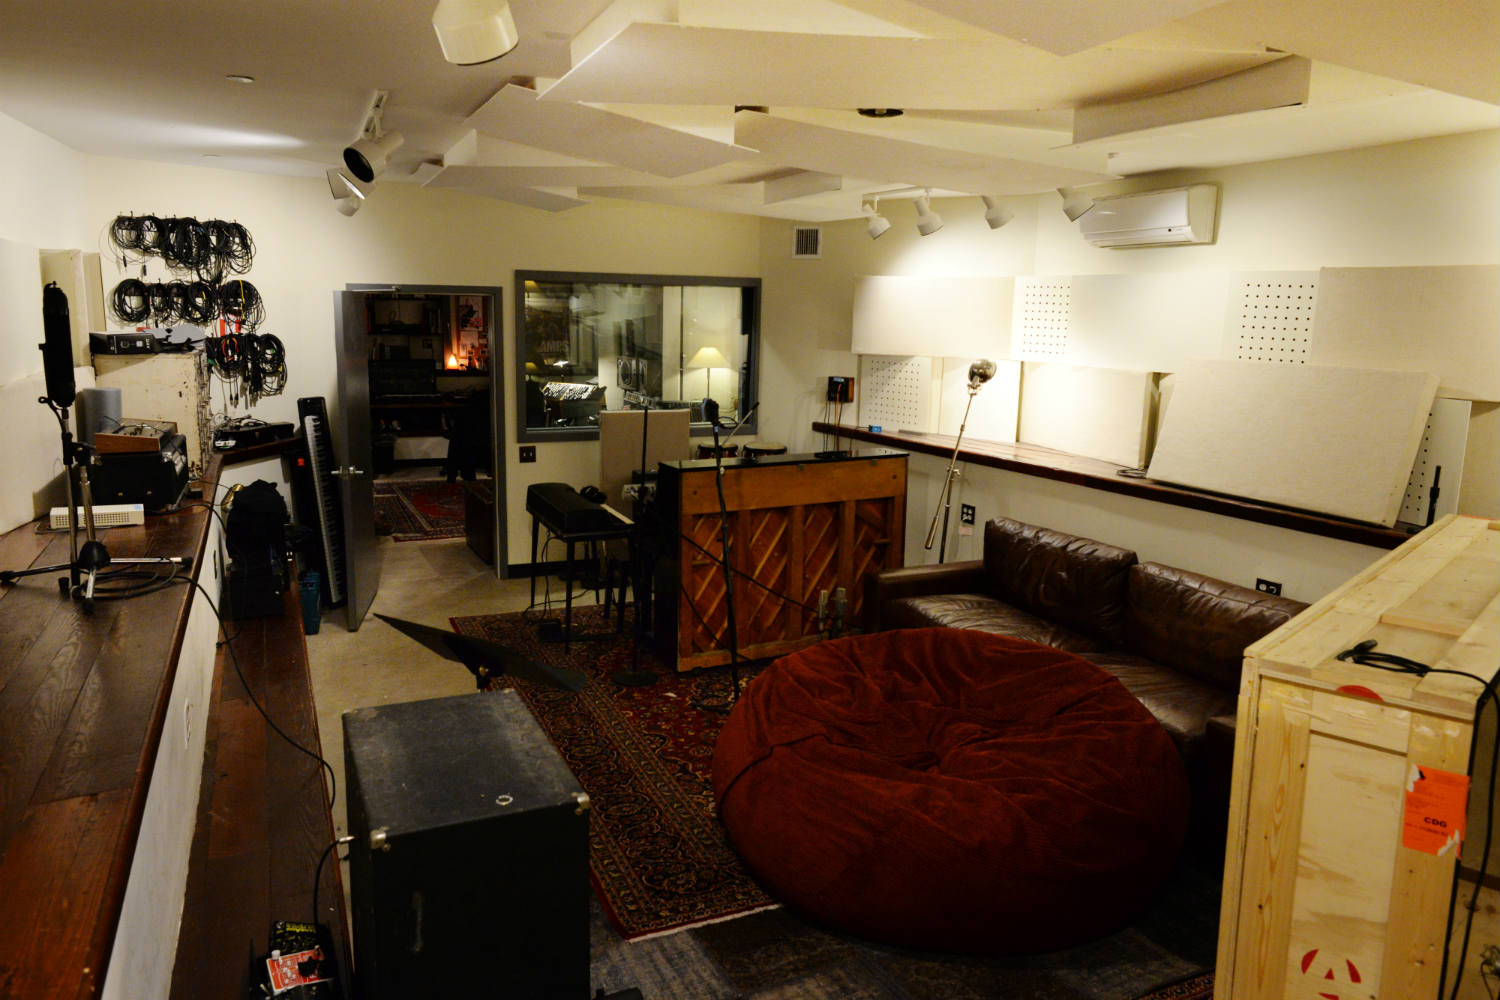 Jack Antonoff's XL Studios from his XL Recordings label, located in Soho, NYC, designed by WSDG. Live Room